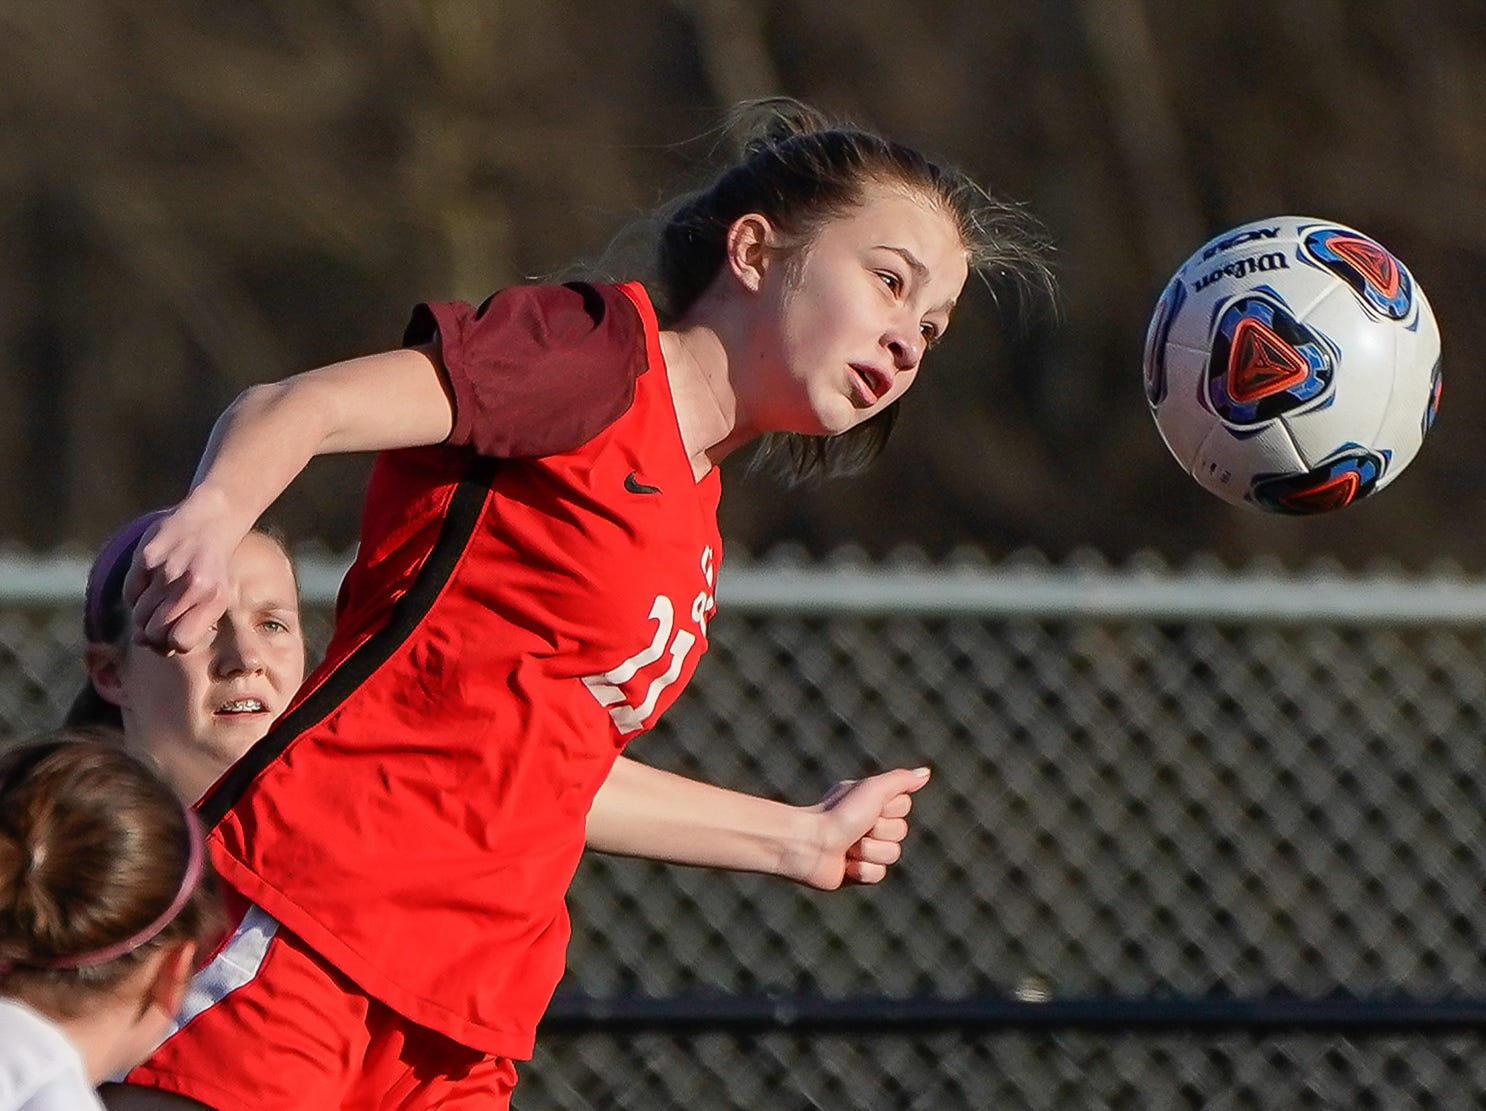 Lafayette's Lucy WIlson (21) heads a ball against Long Beach during the MHSAA 5A Girls Soccer Championships held at Brandon High School in Brandon, MS, Saturday February 9, 2019.(Bob Smith-For The Clarion Ledger)